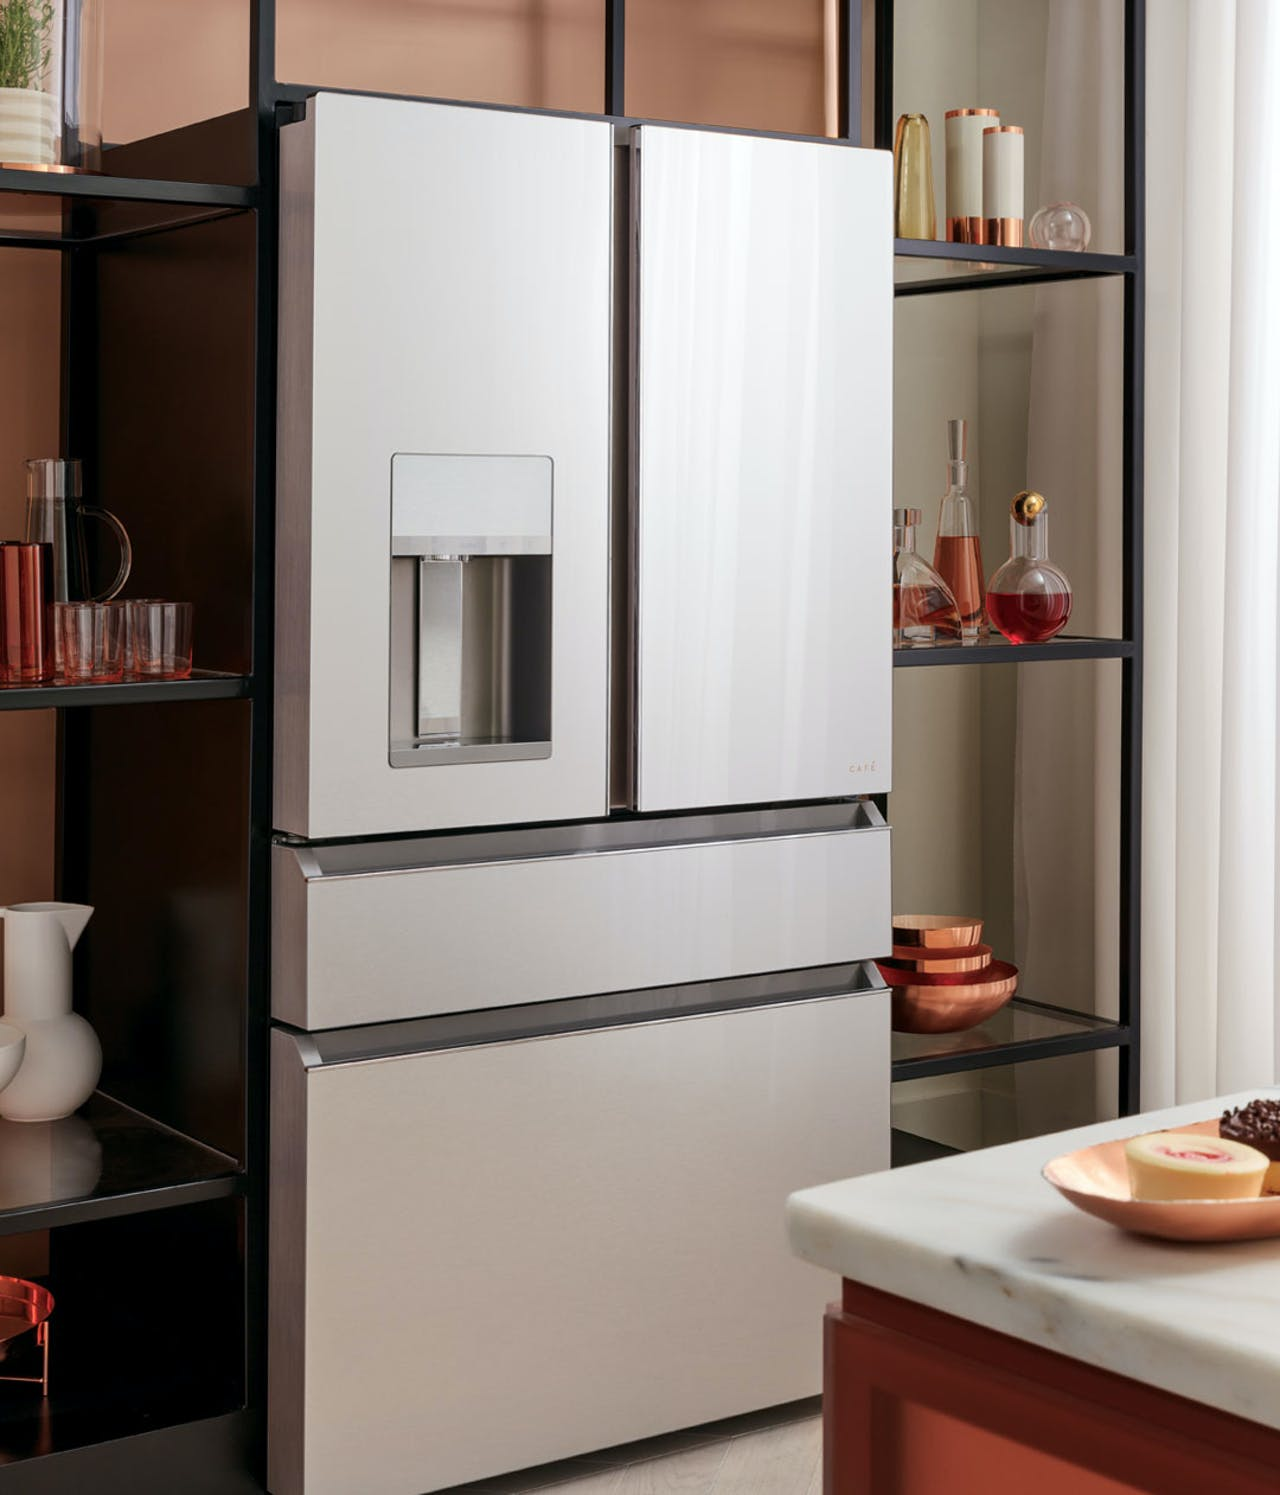 4-Door French-Door Refrigerator in Platinum Glass